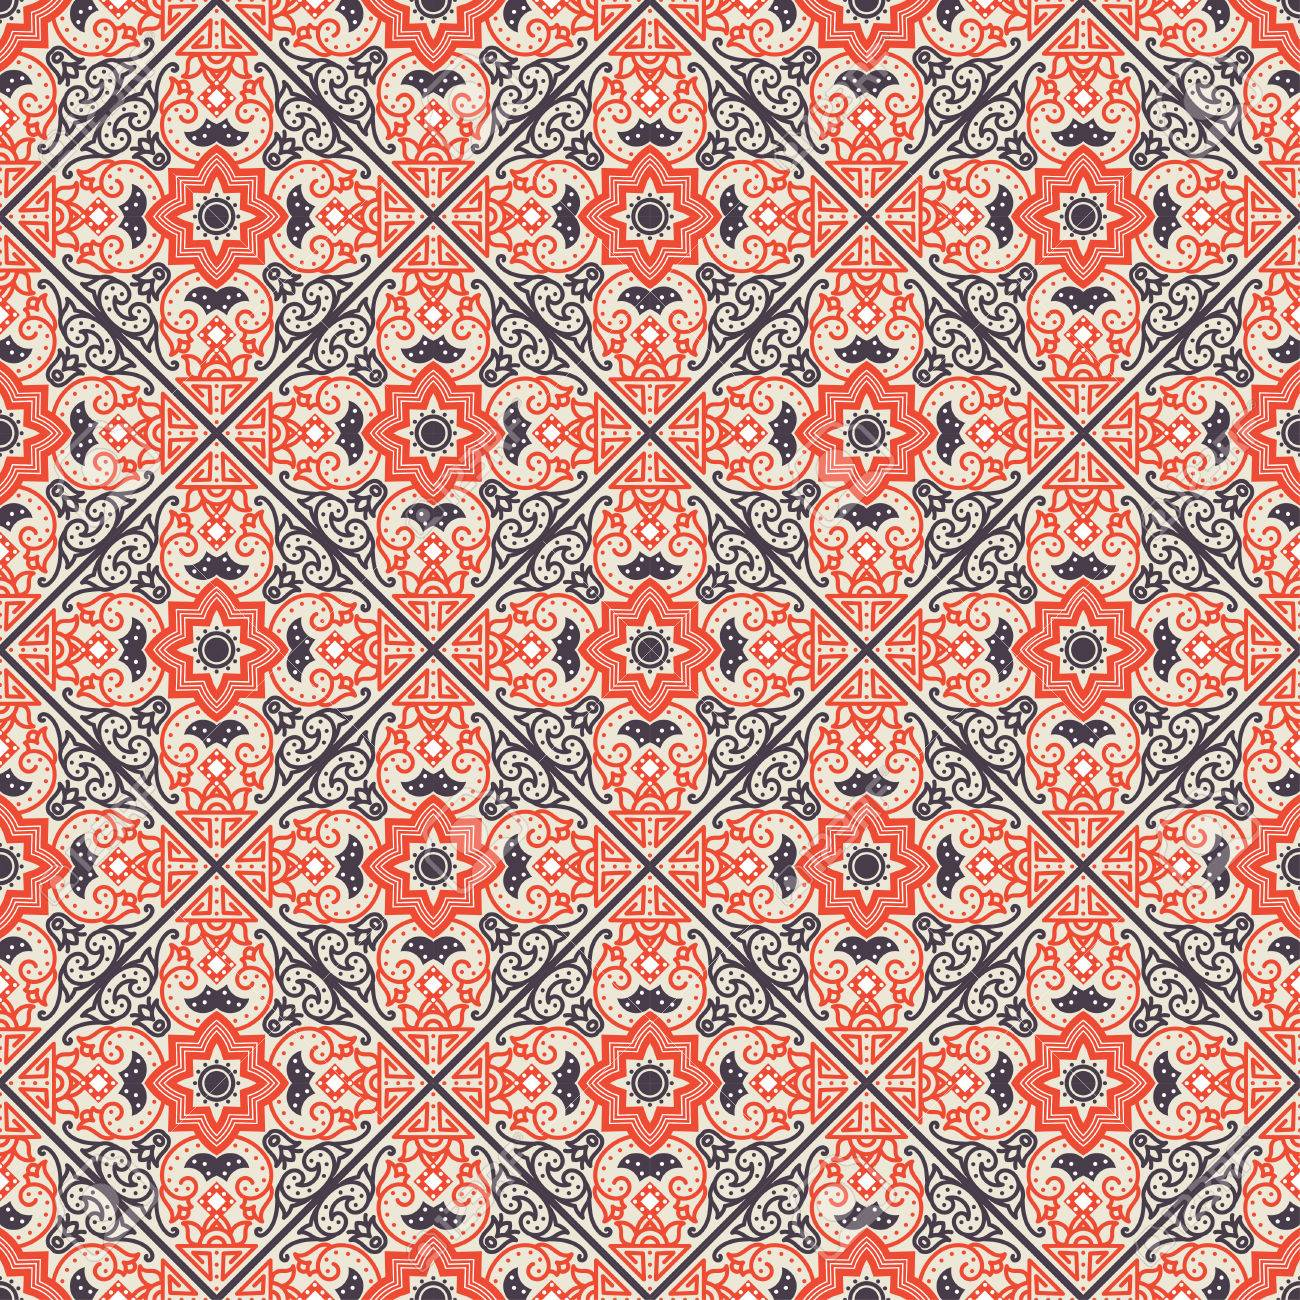 talavera tile vibrant mexican seamless pattern originally from